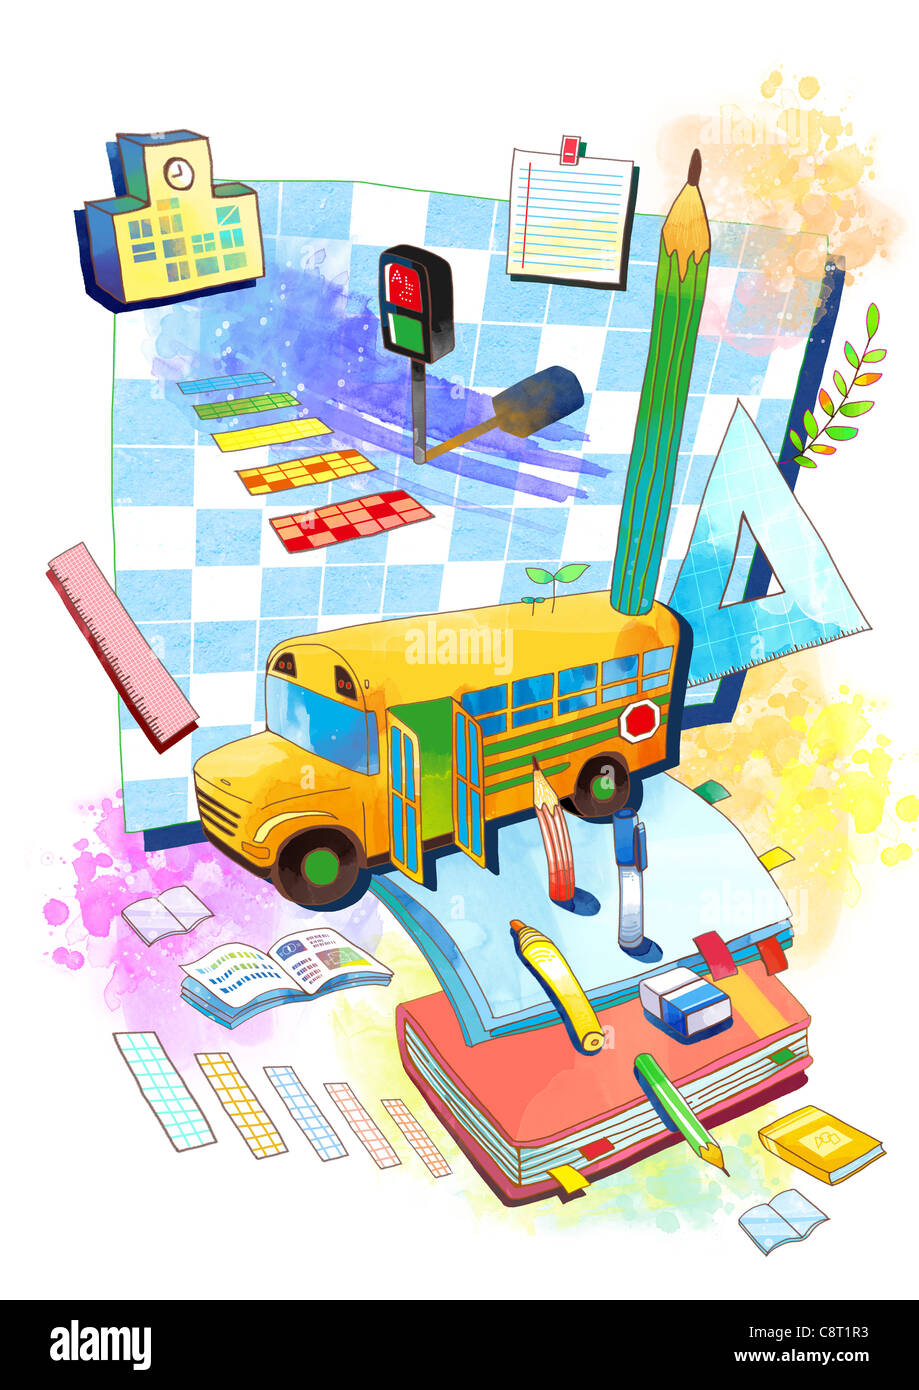 School Bus And Educational Supplement - Stock Image